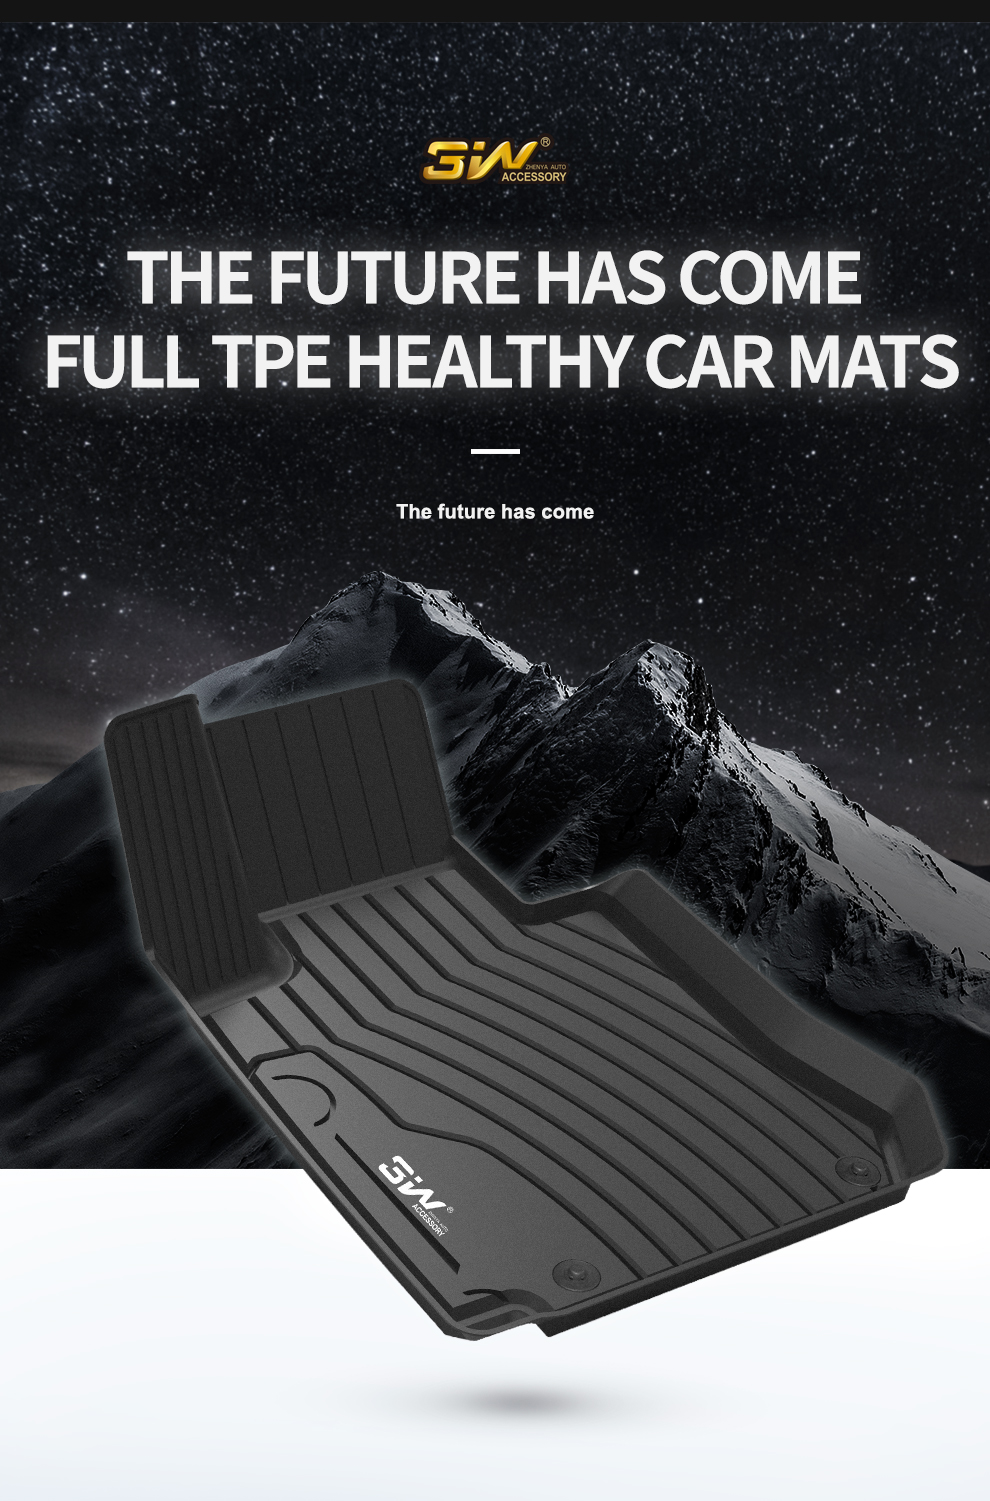 What are the advantages of TPE car mats material?